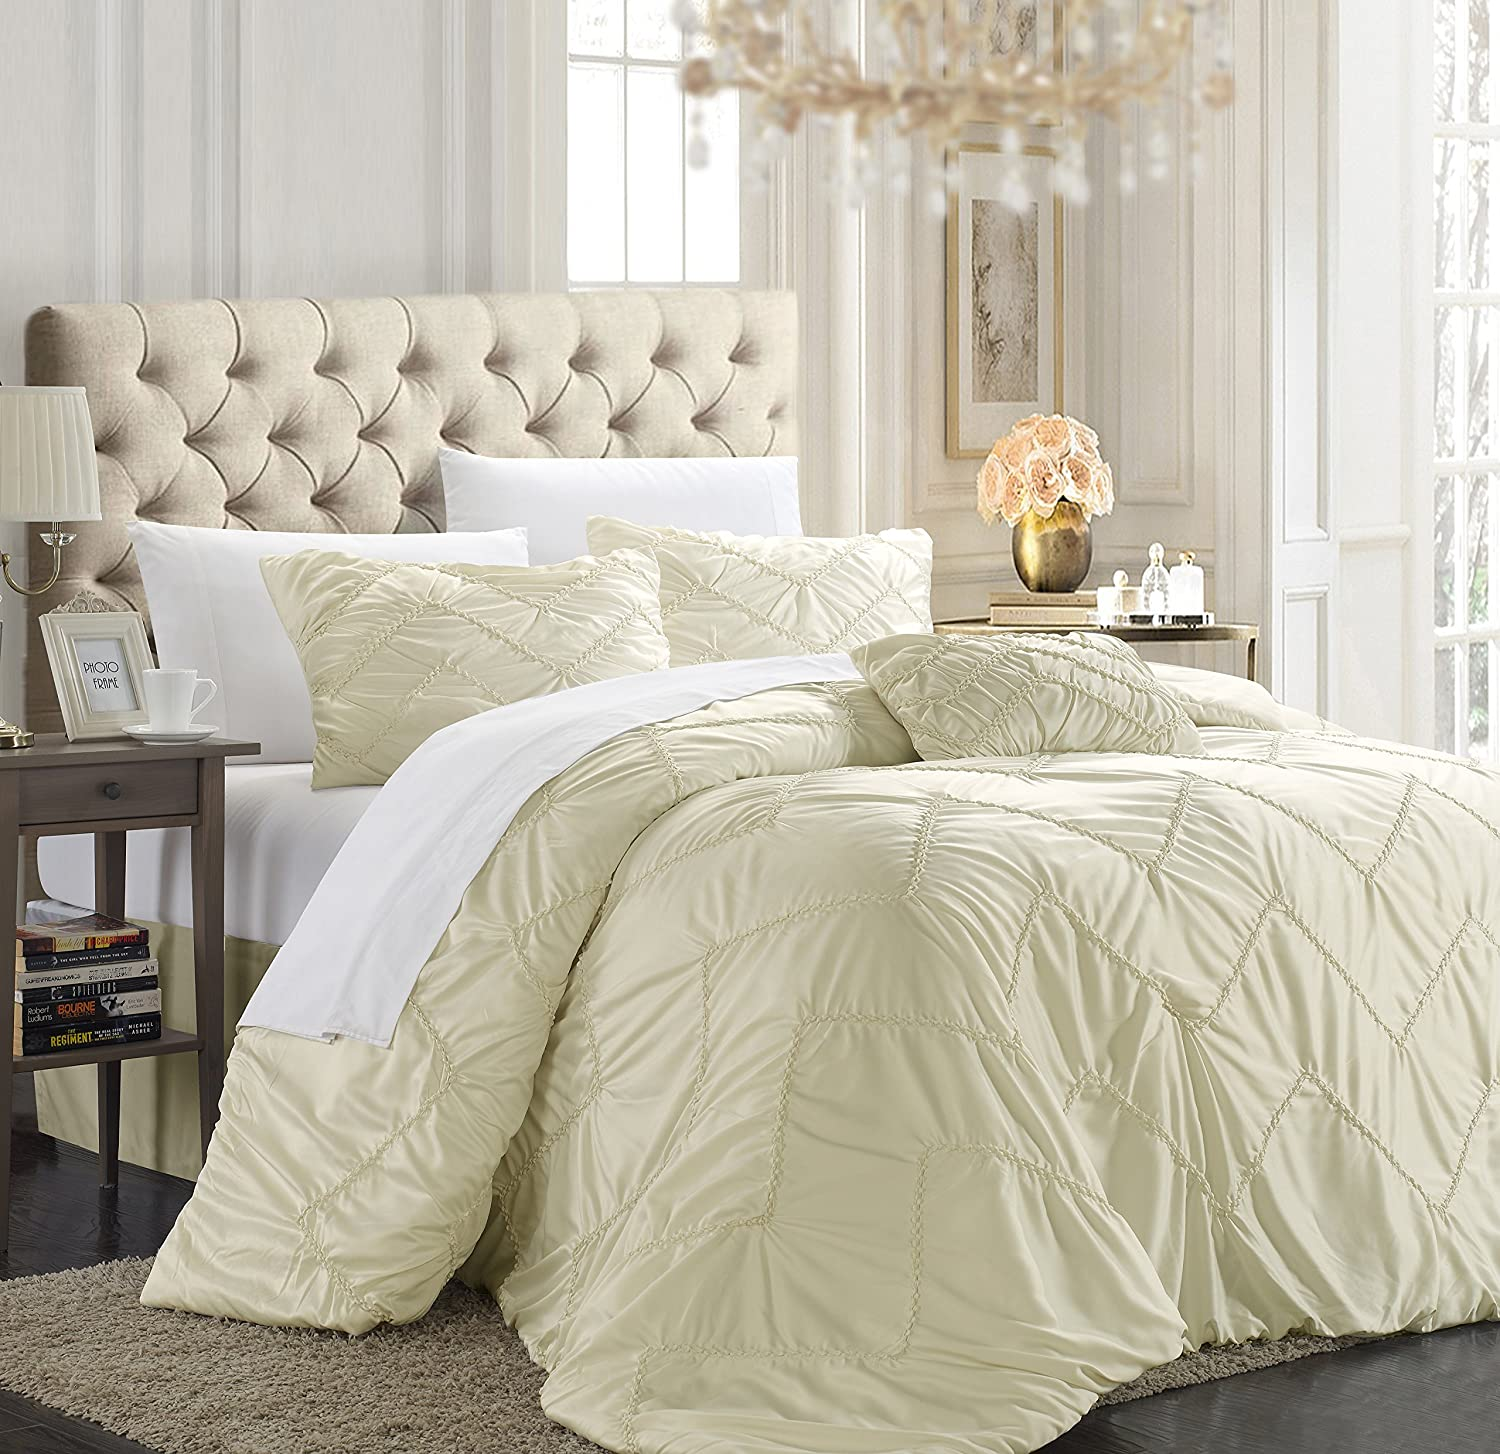 cream pattern by paisley ideas bedding duvet in comforter decoration bedroom studio miller for wonderful max set tahari maxx blanke bed tj elephant nicole medallions quilt grey twin